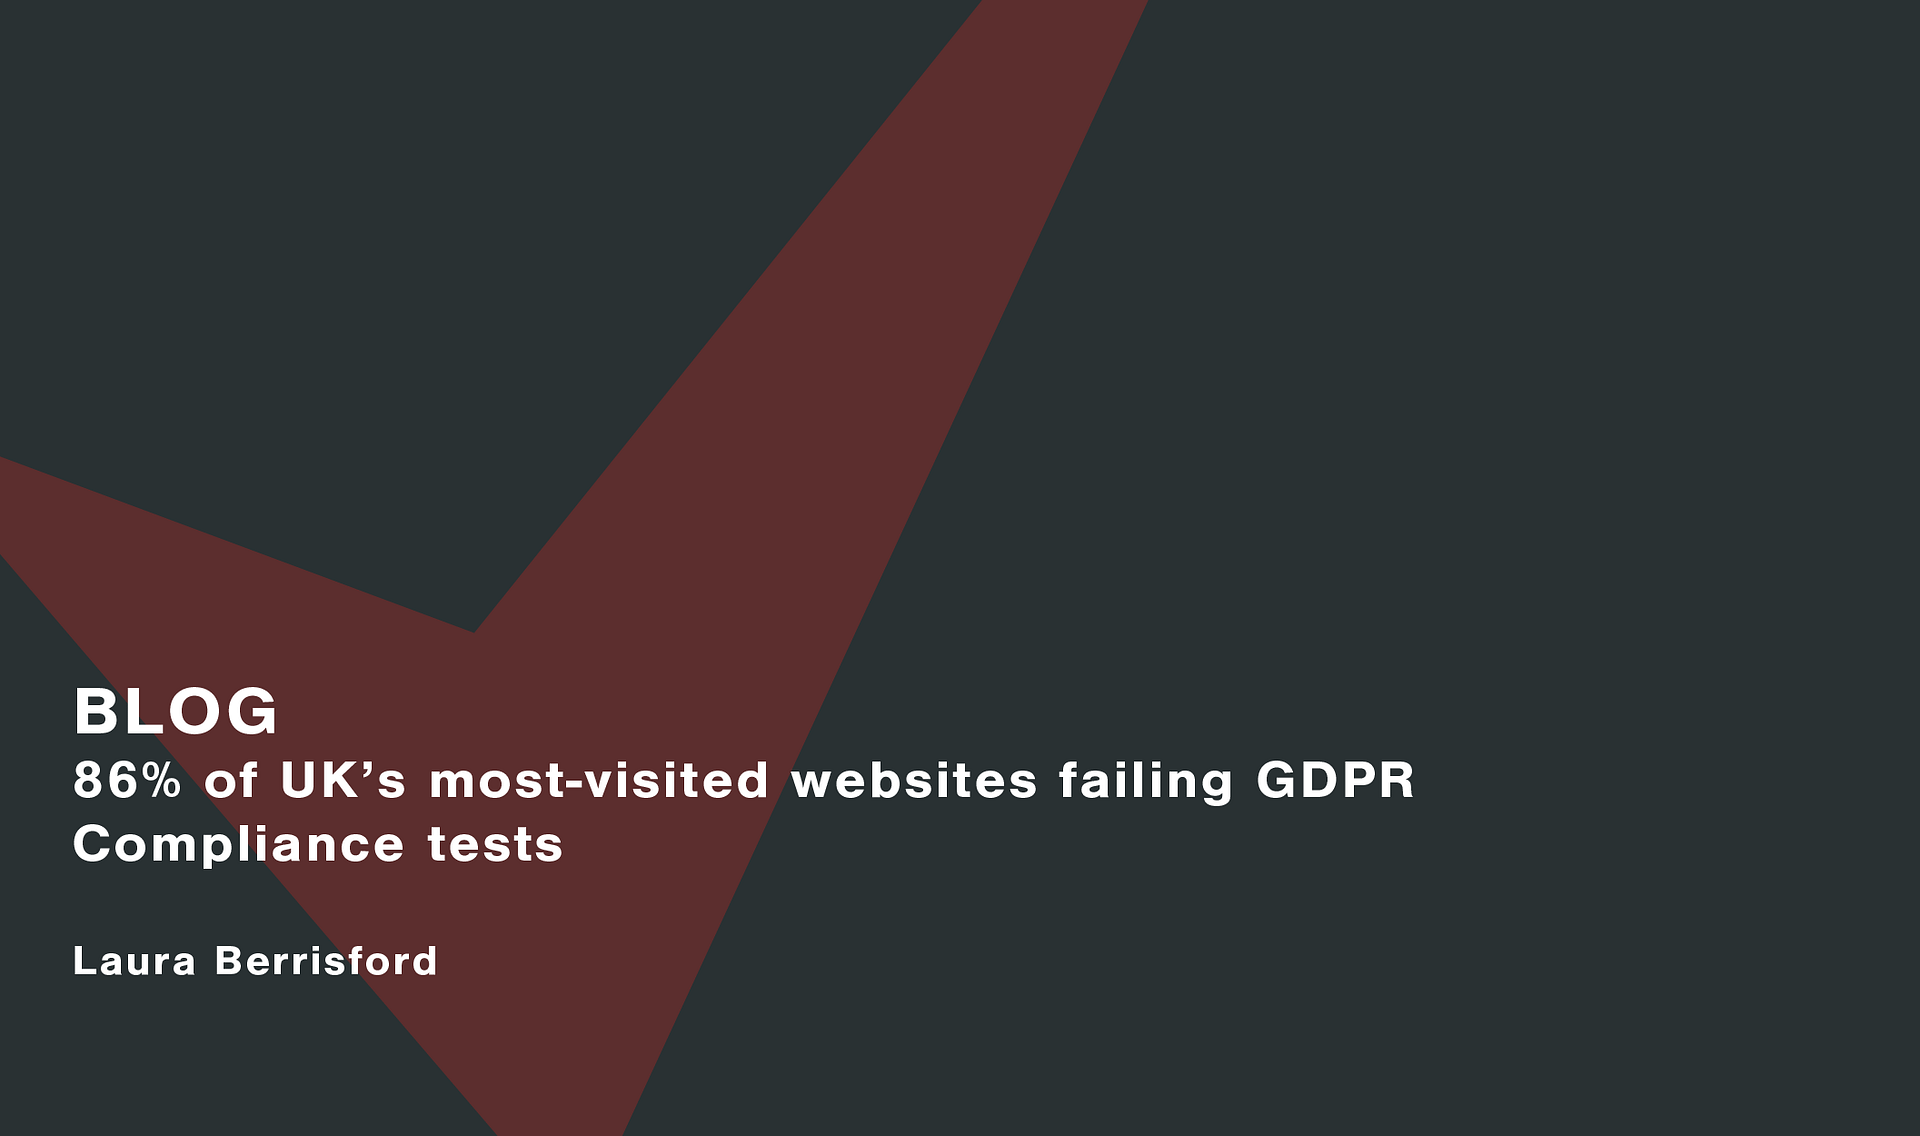 86% of UK's most-visited websites failing GDPR compliance tests Cassie personal information & consent management